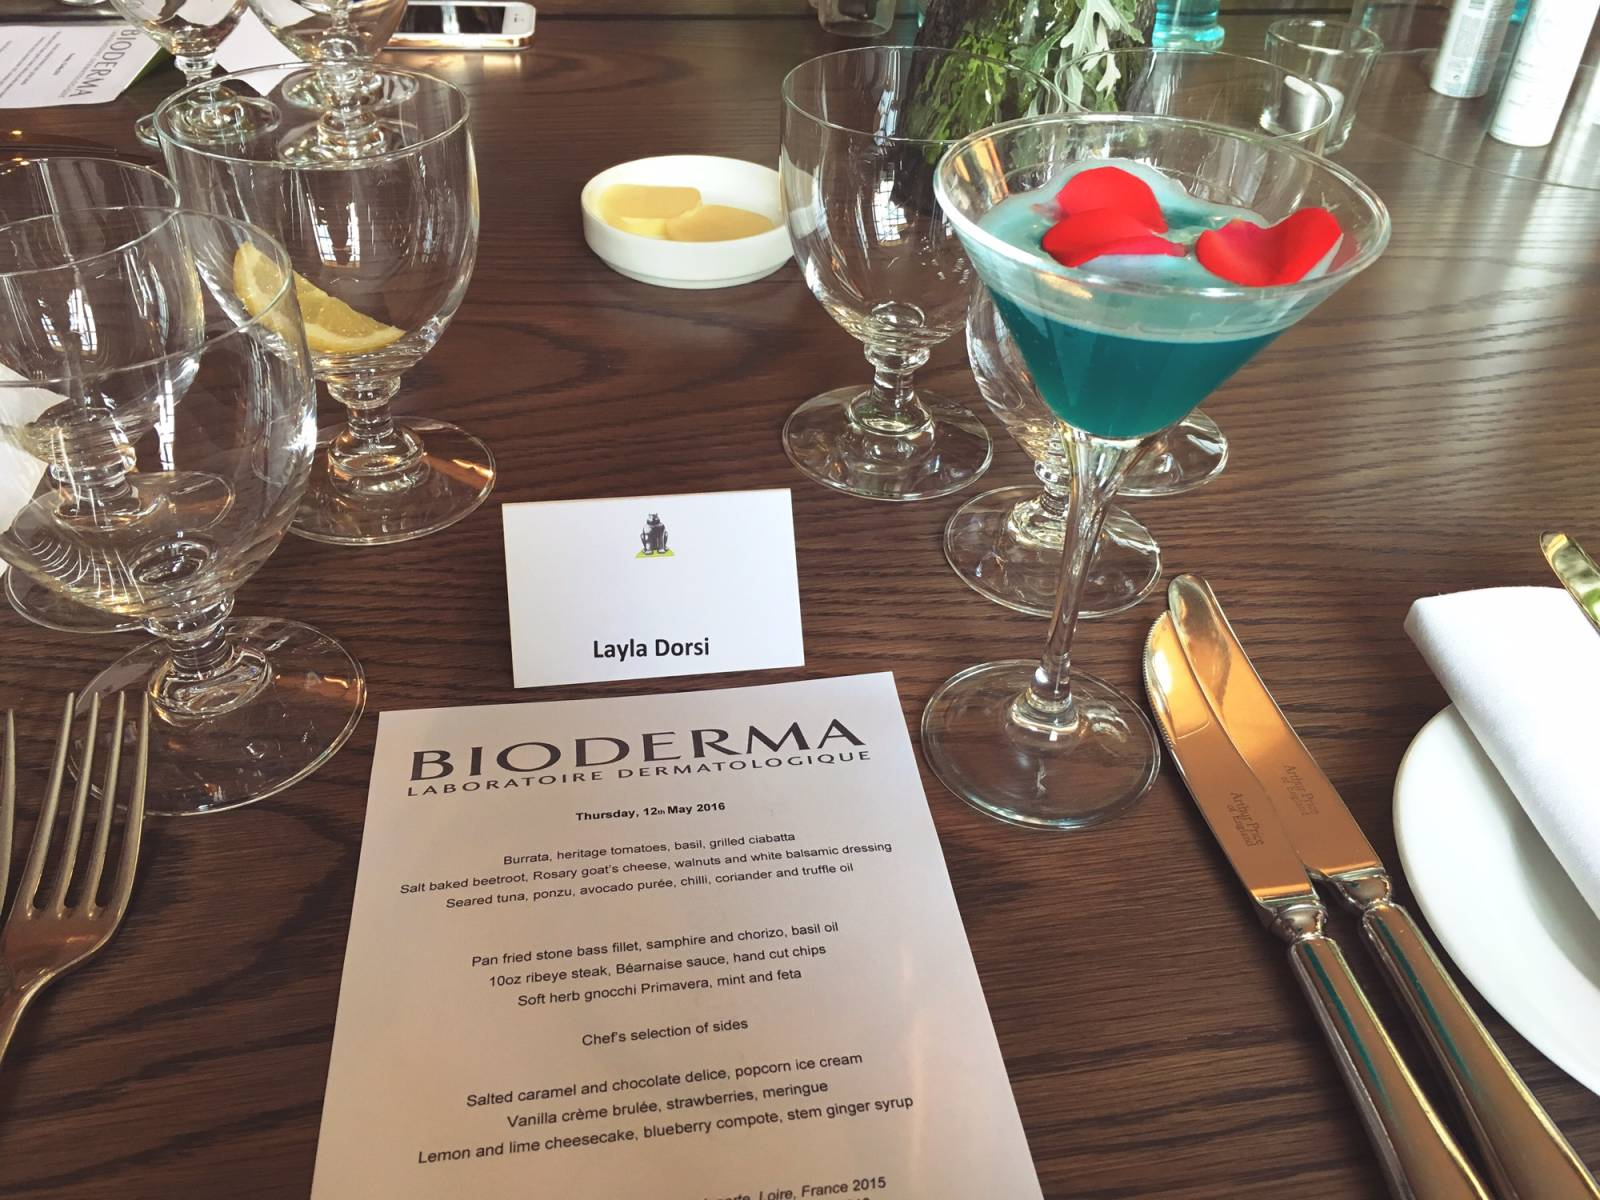 bioderma-hydrabio-mist-launch-event